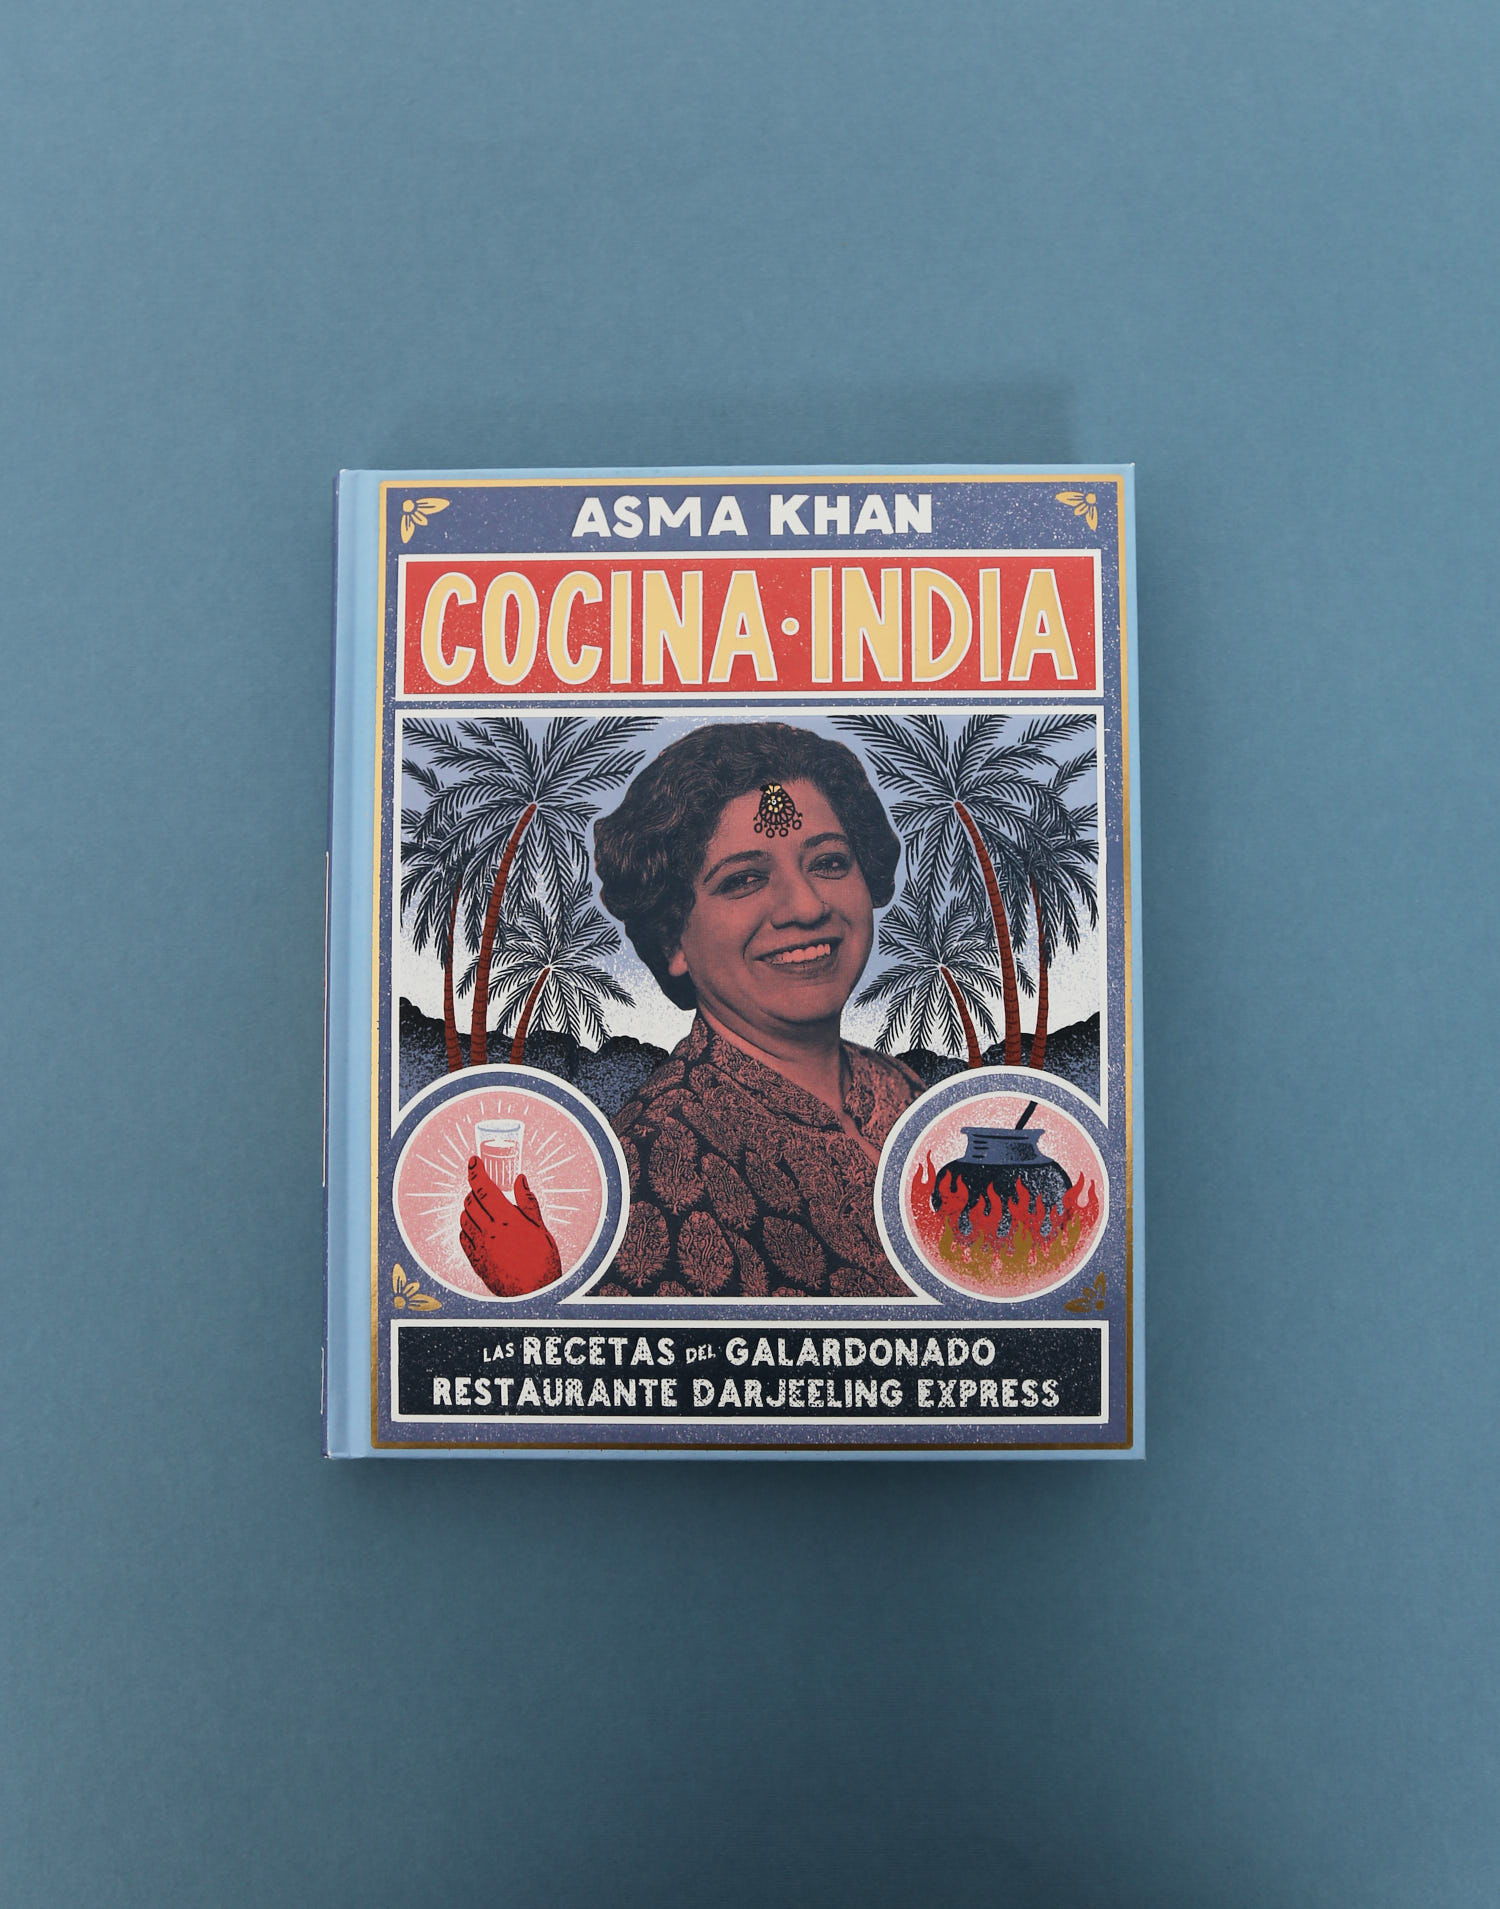 Cocina india (indian kitchen)